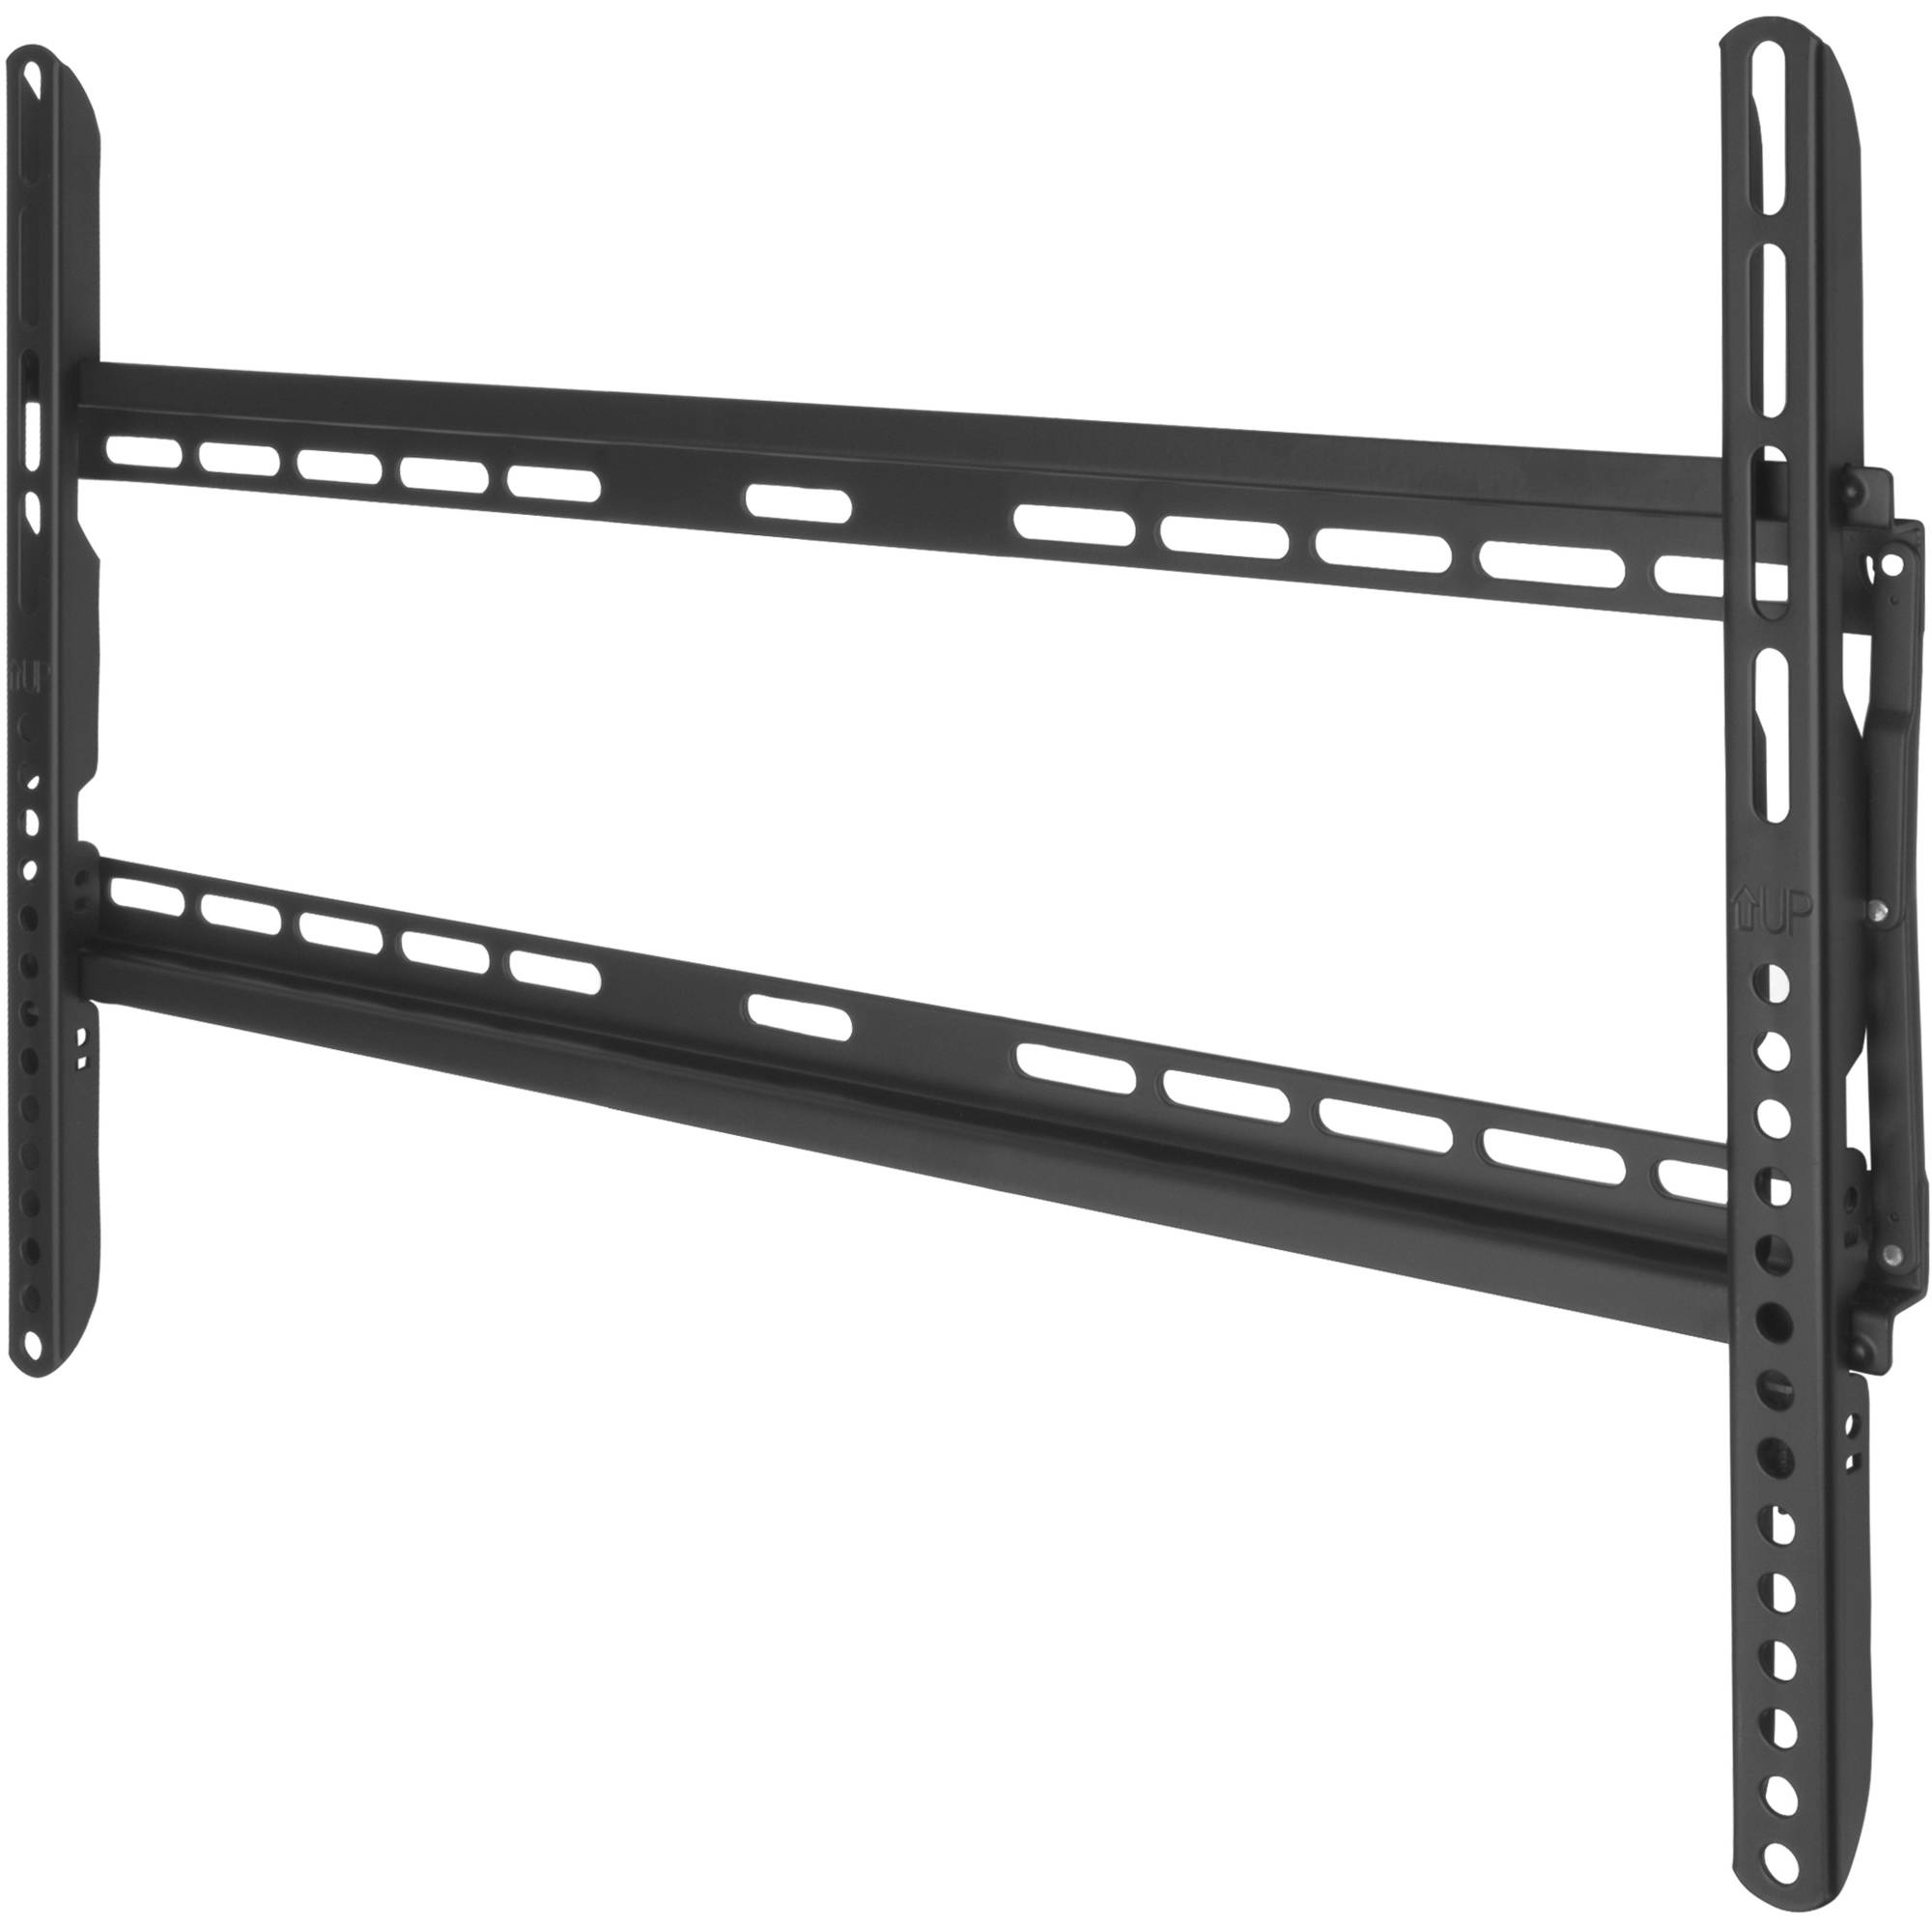 "Swift Mount SWIFT600-AP Low Profile Wall Mount for Flat Panel TV's 37""-65"""